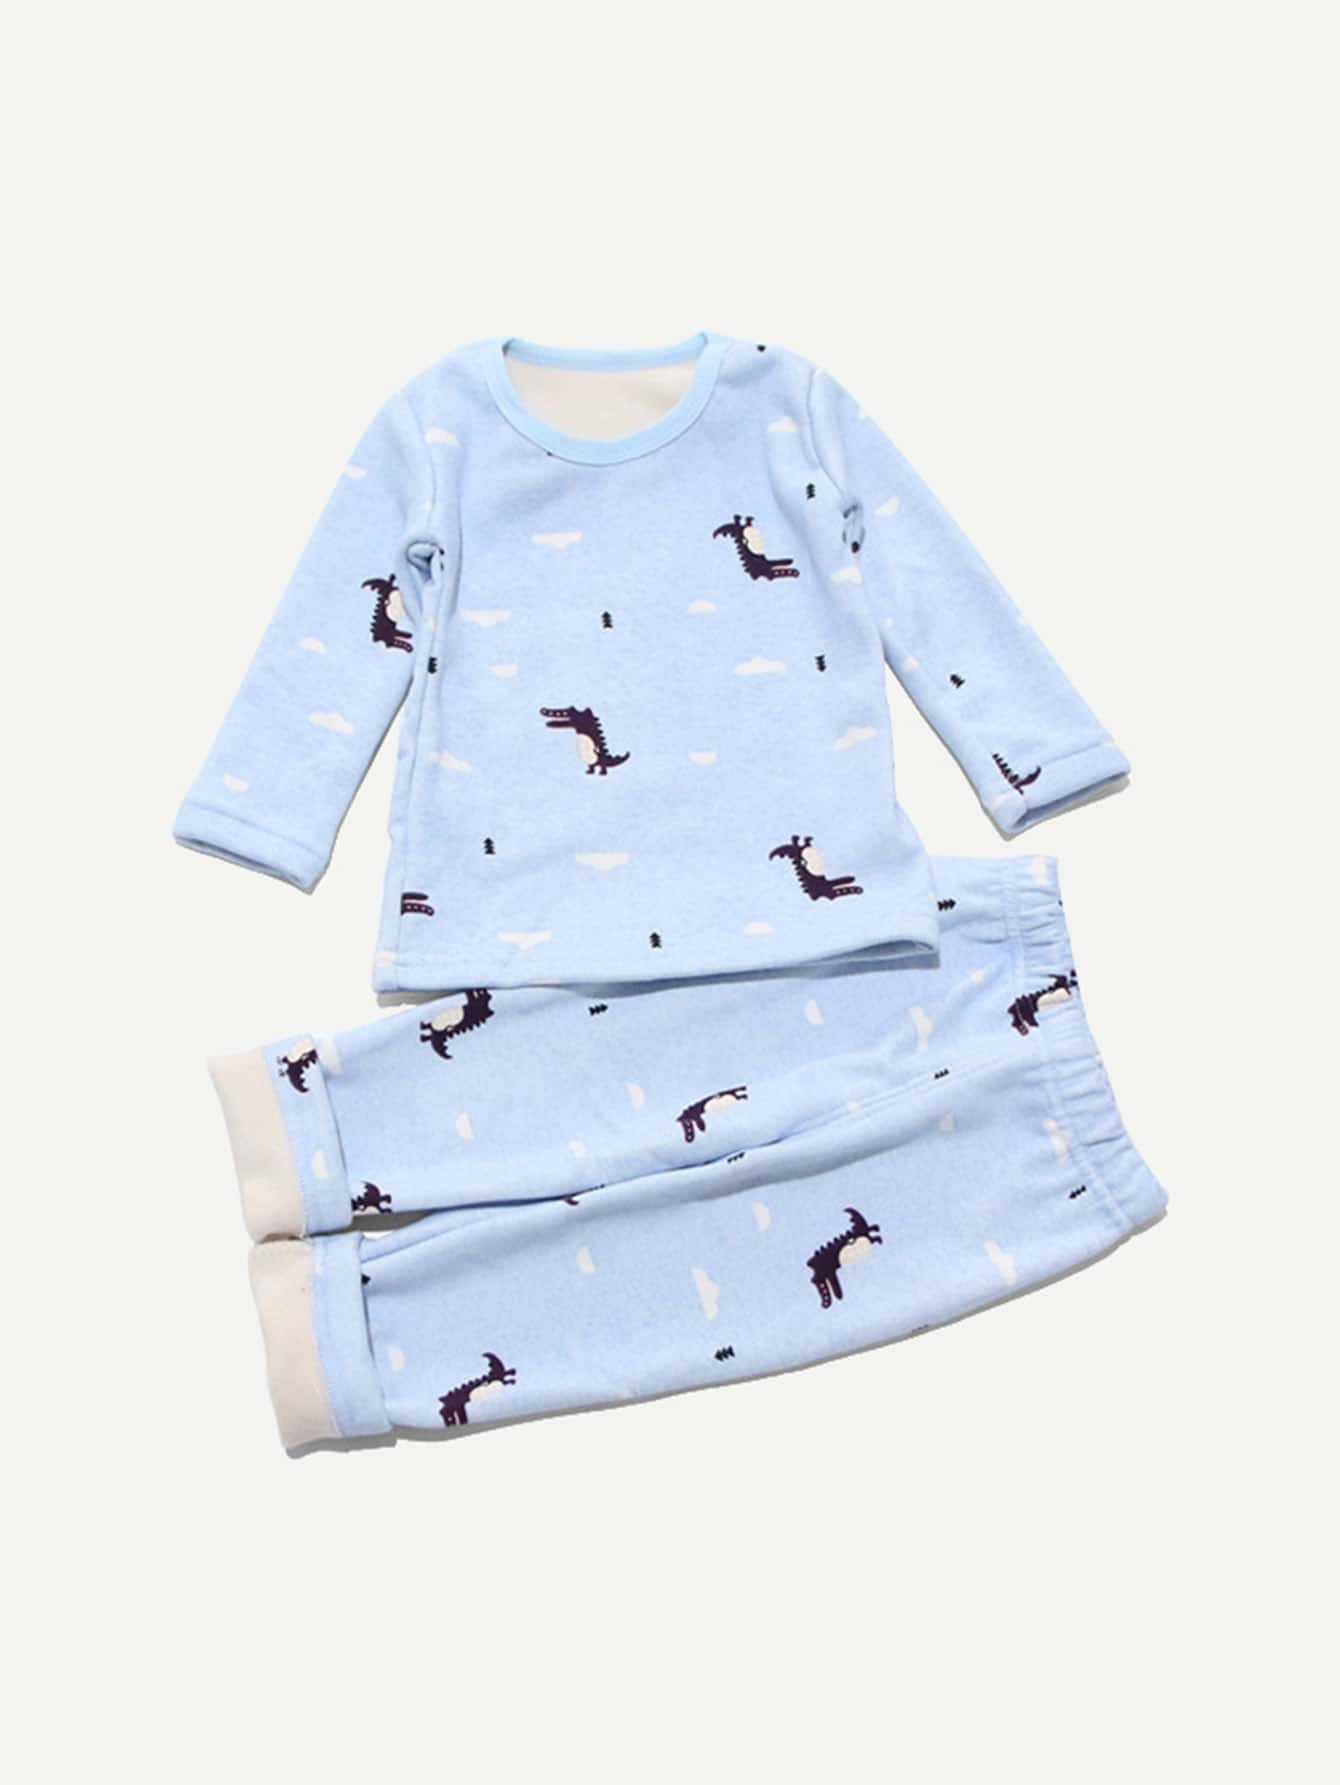 Boys Cartoon Print Top With Pants Boys Cartoon Print Top With Pants